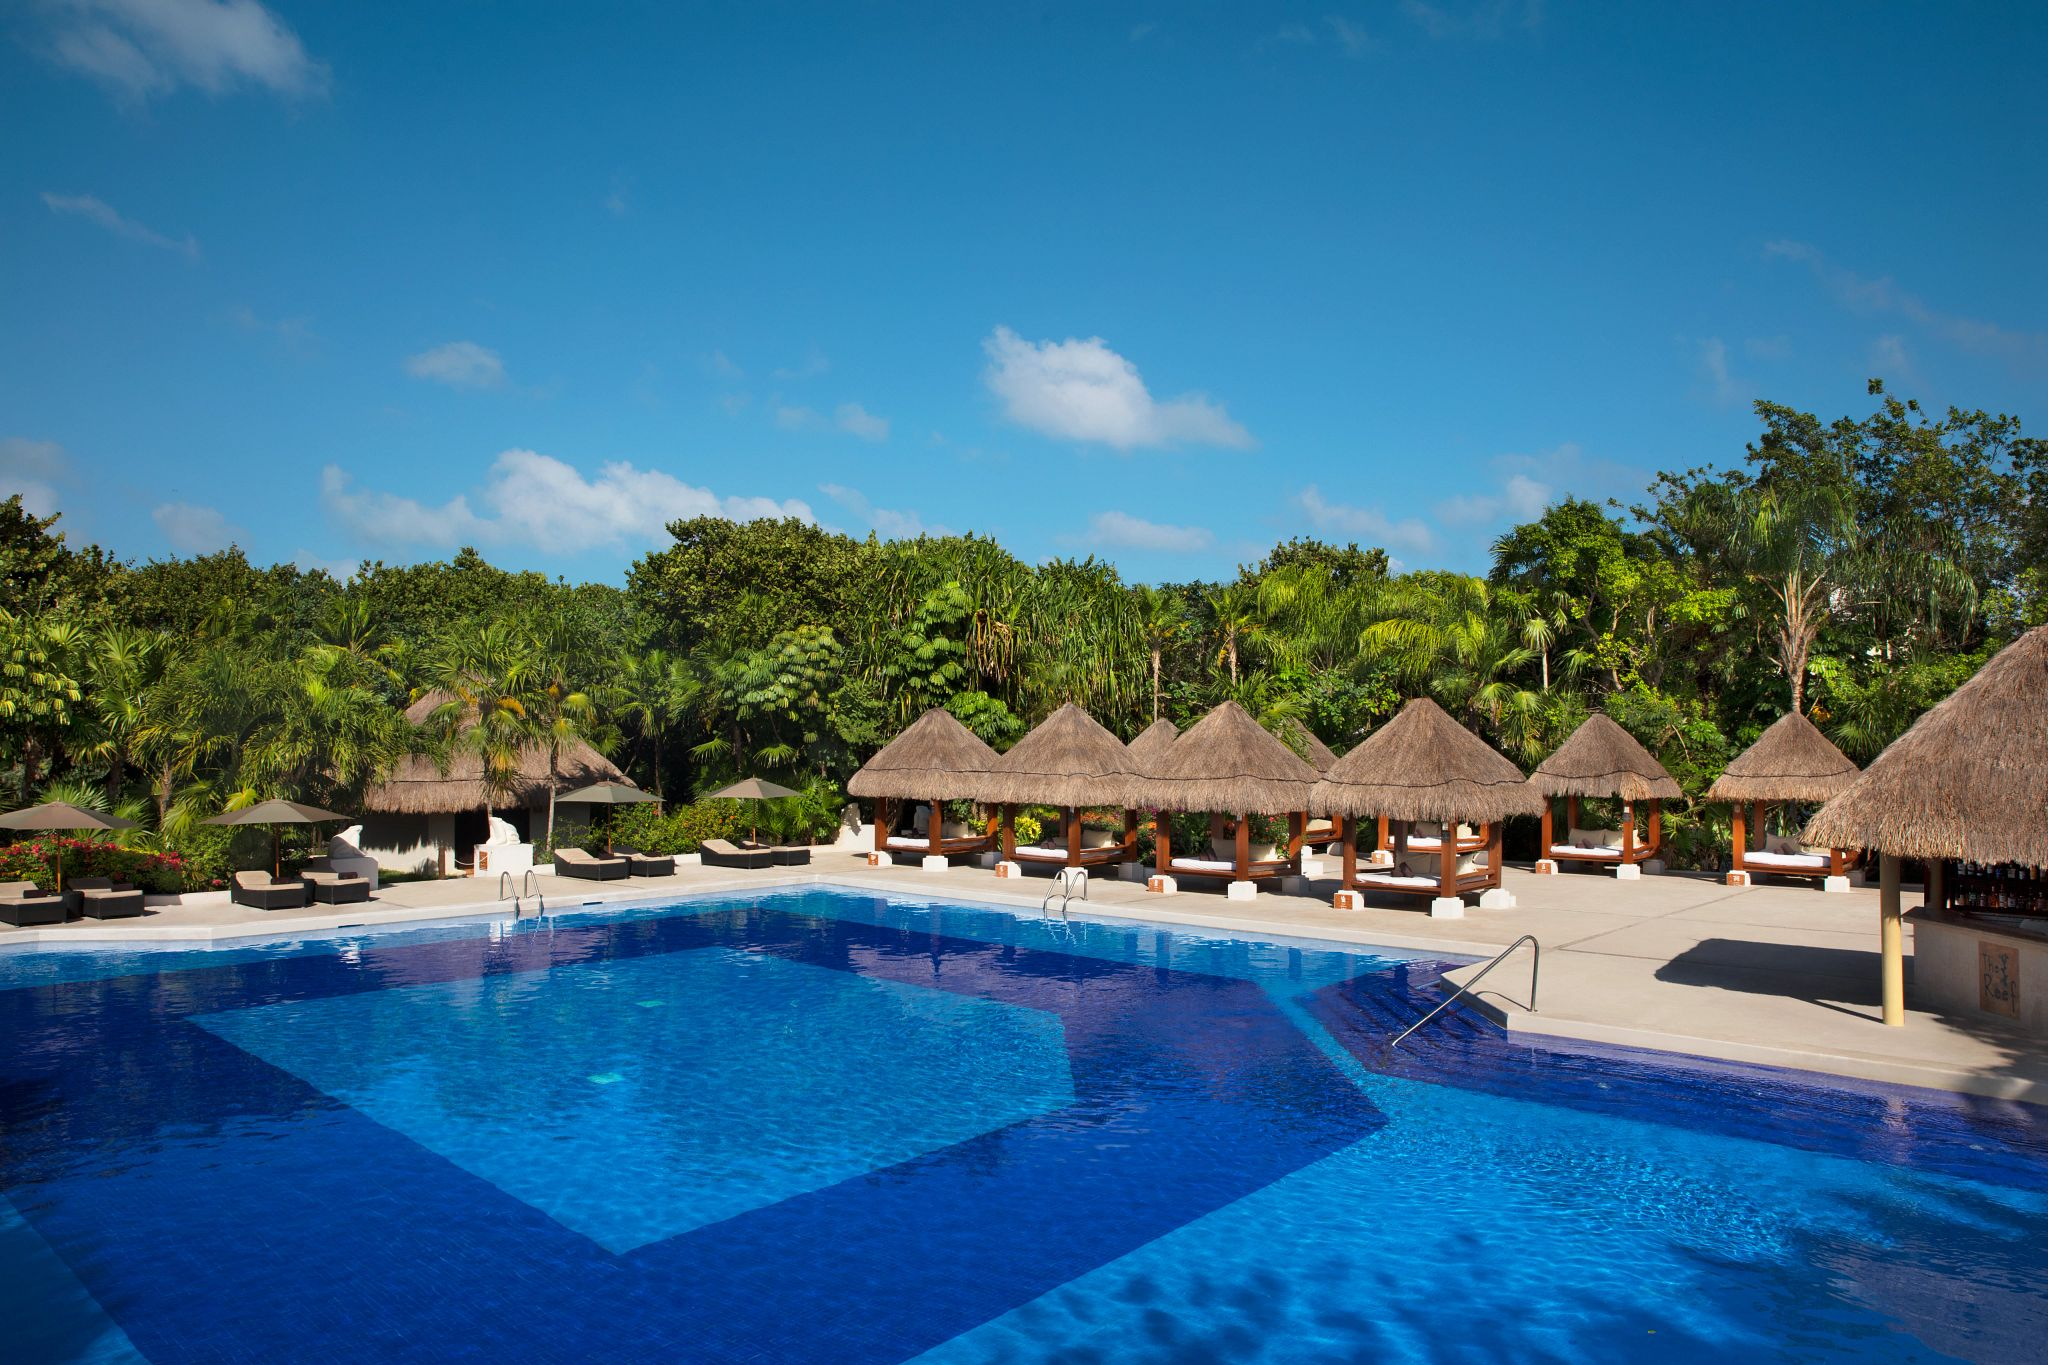 pool with thatched roof lounge areas